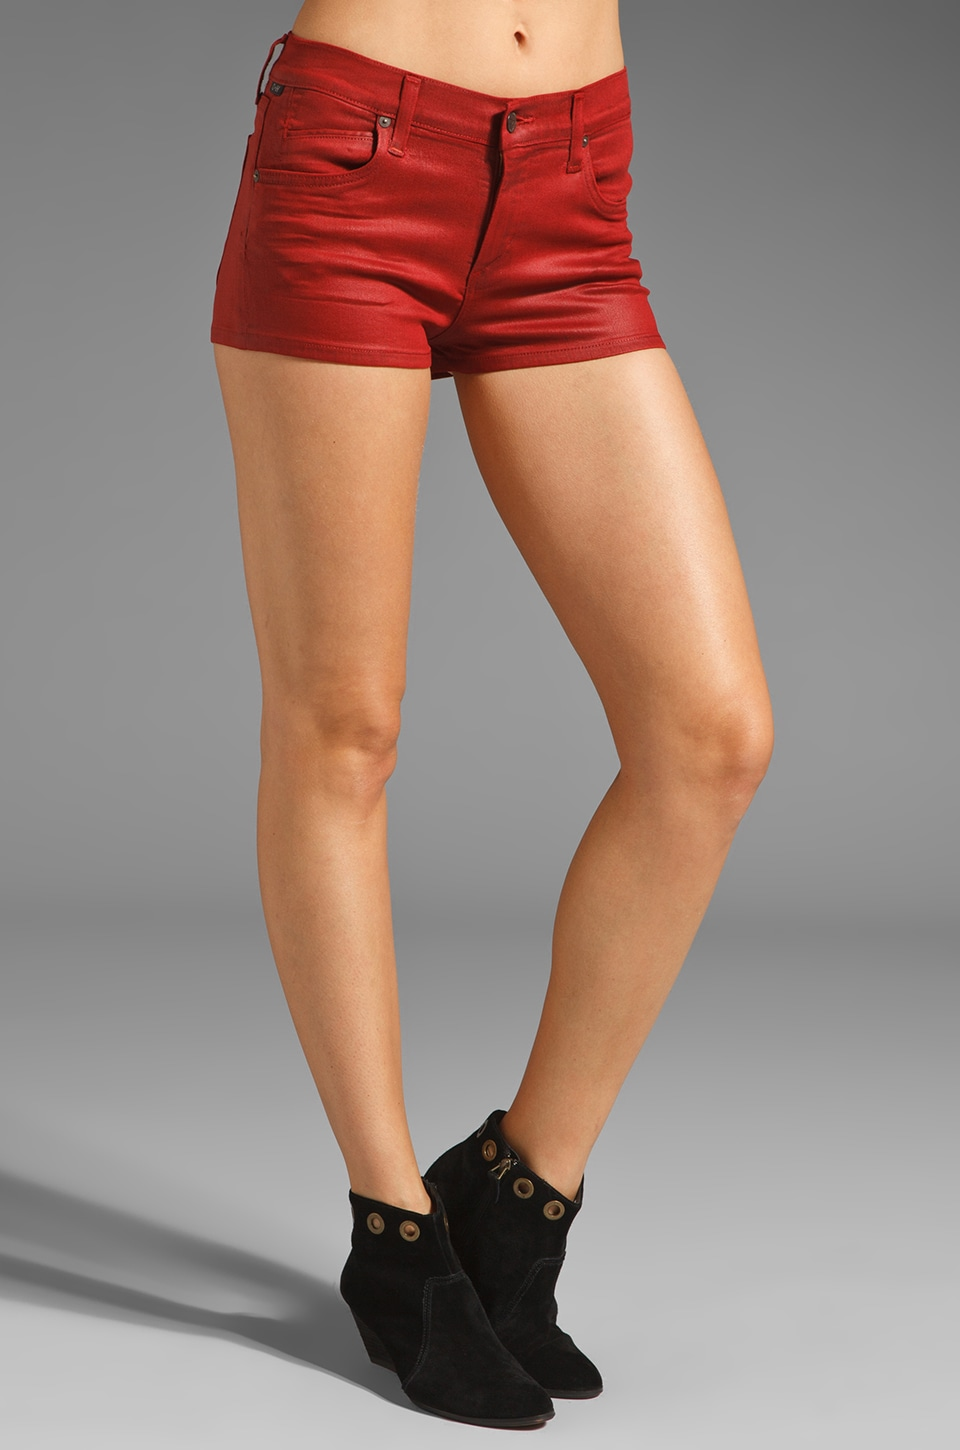 Citizens of Humanity Jeans Mandy Highrise Short in Vamp Red